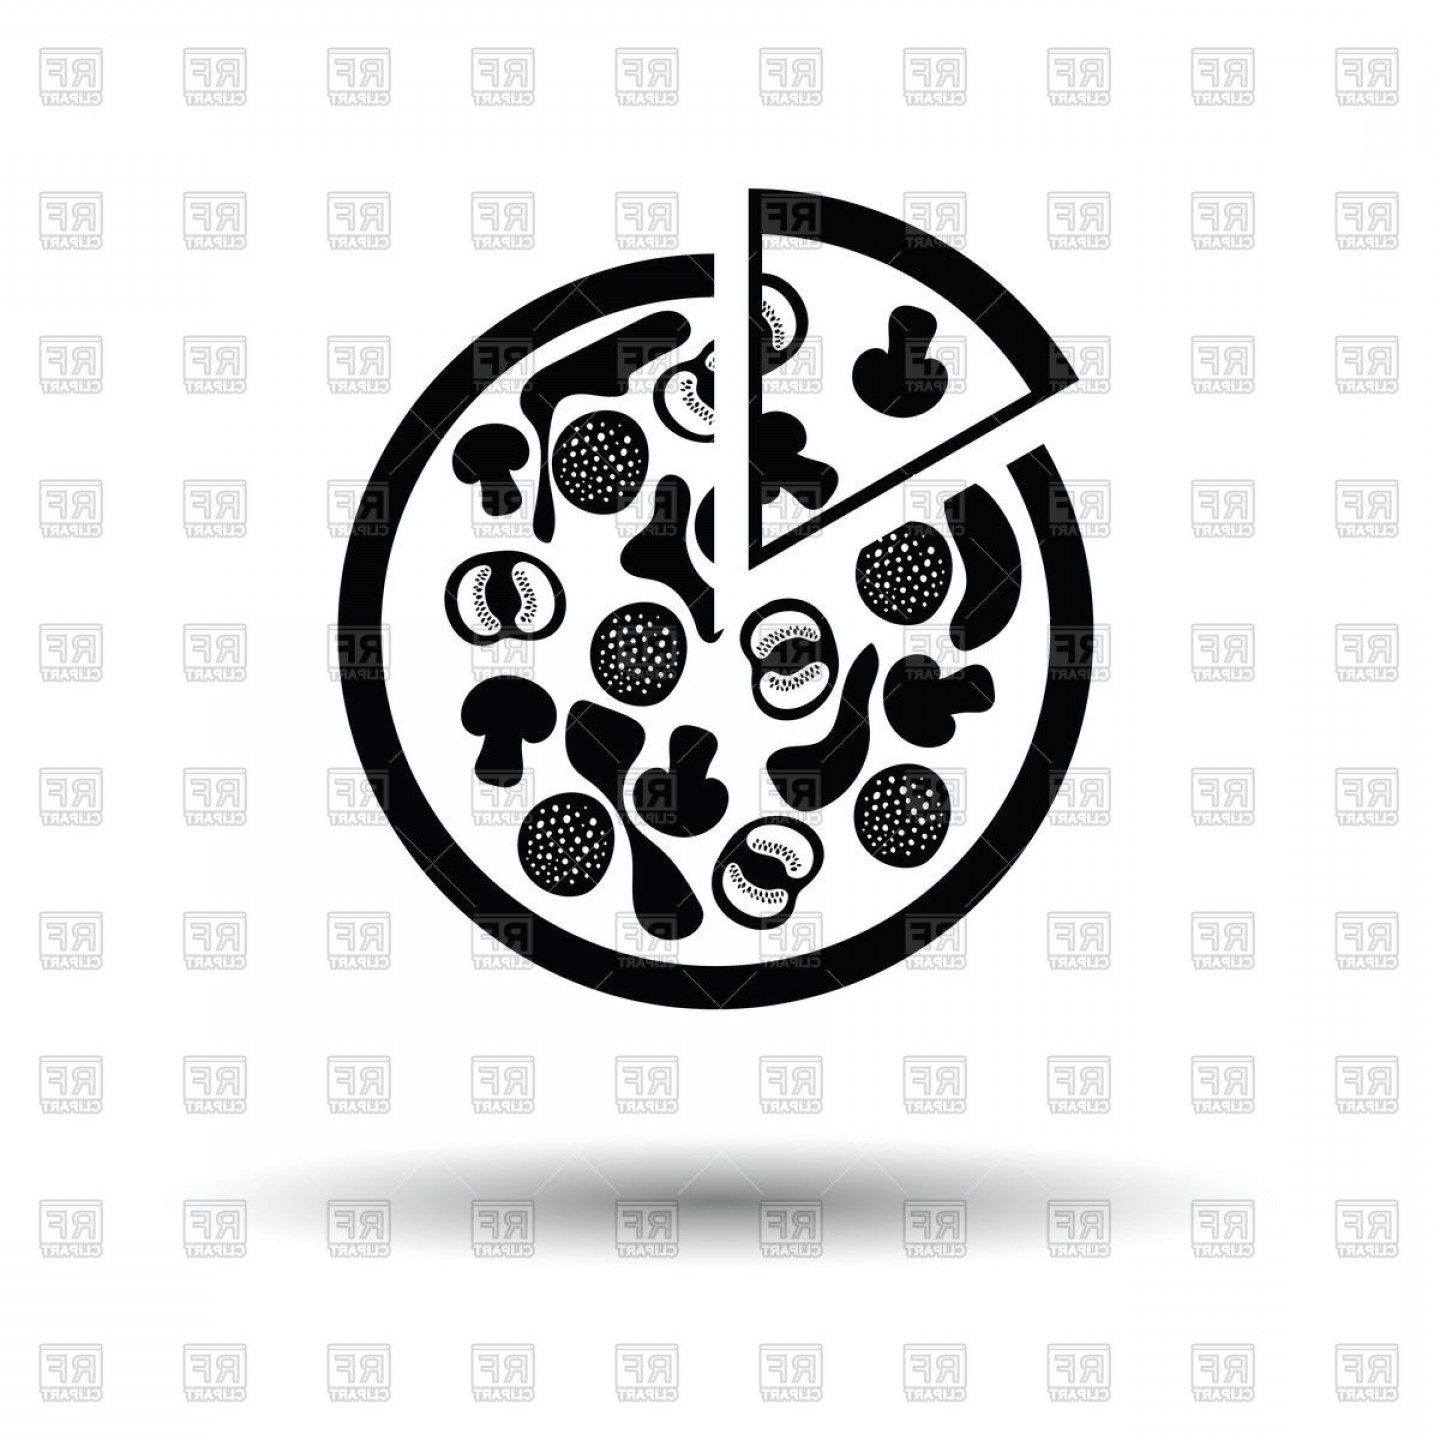 In Icon Stock Vector: Free Pizza Clipart New Pizza On Plate Icon Stock Vector Image